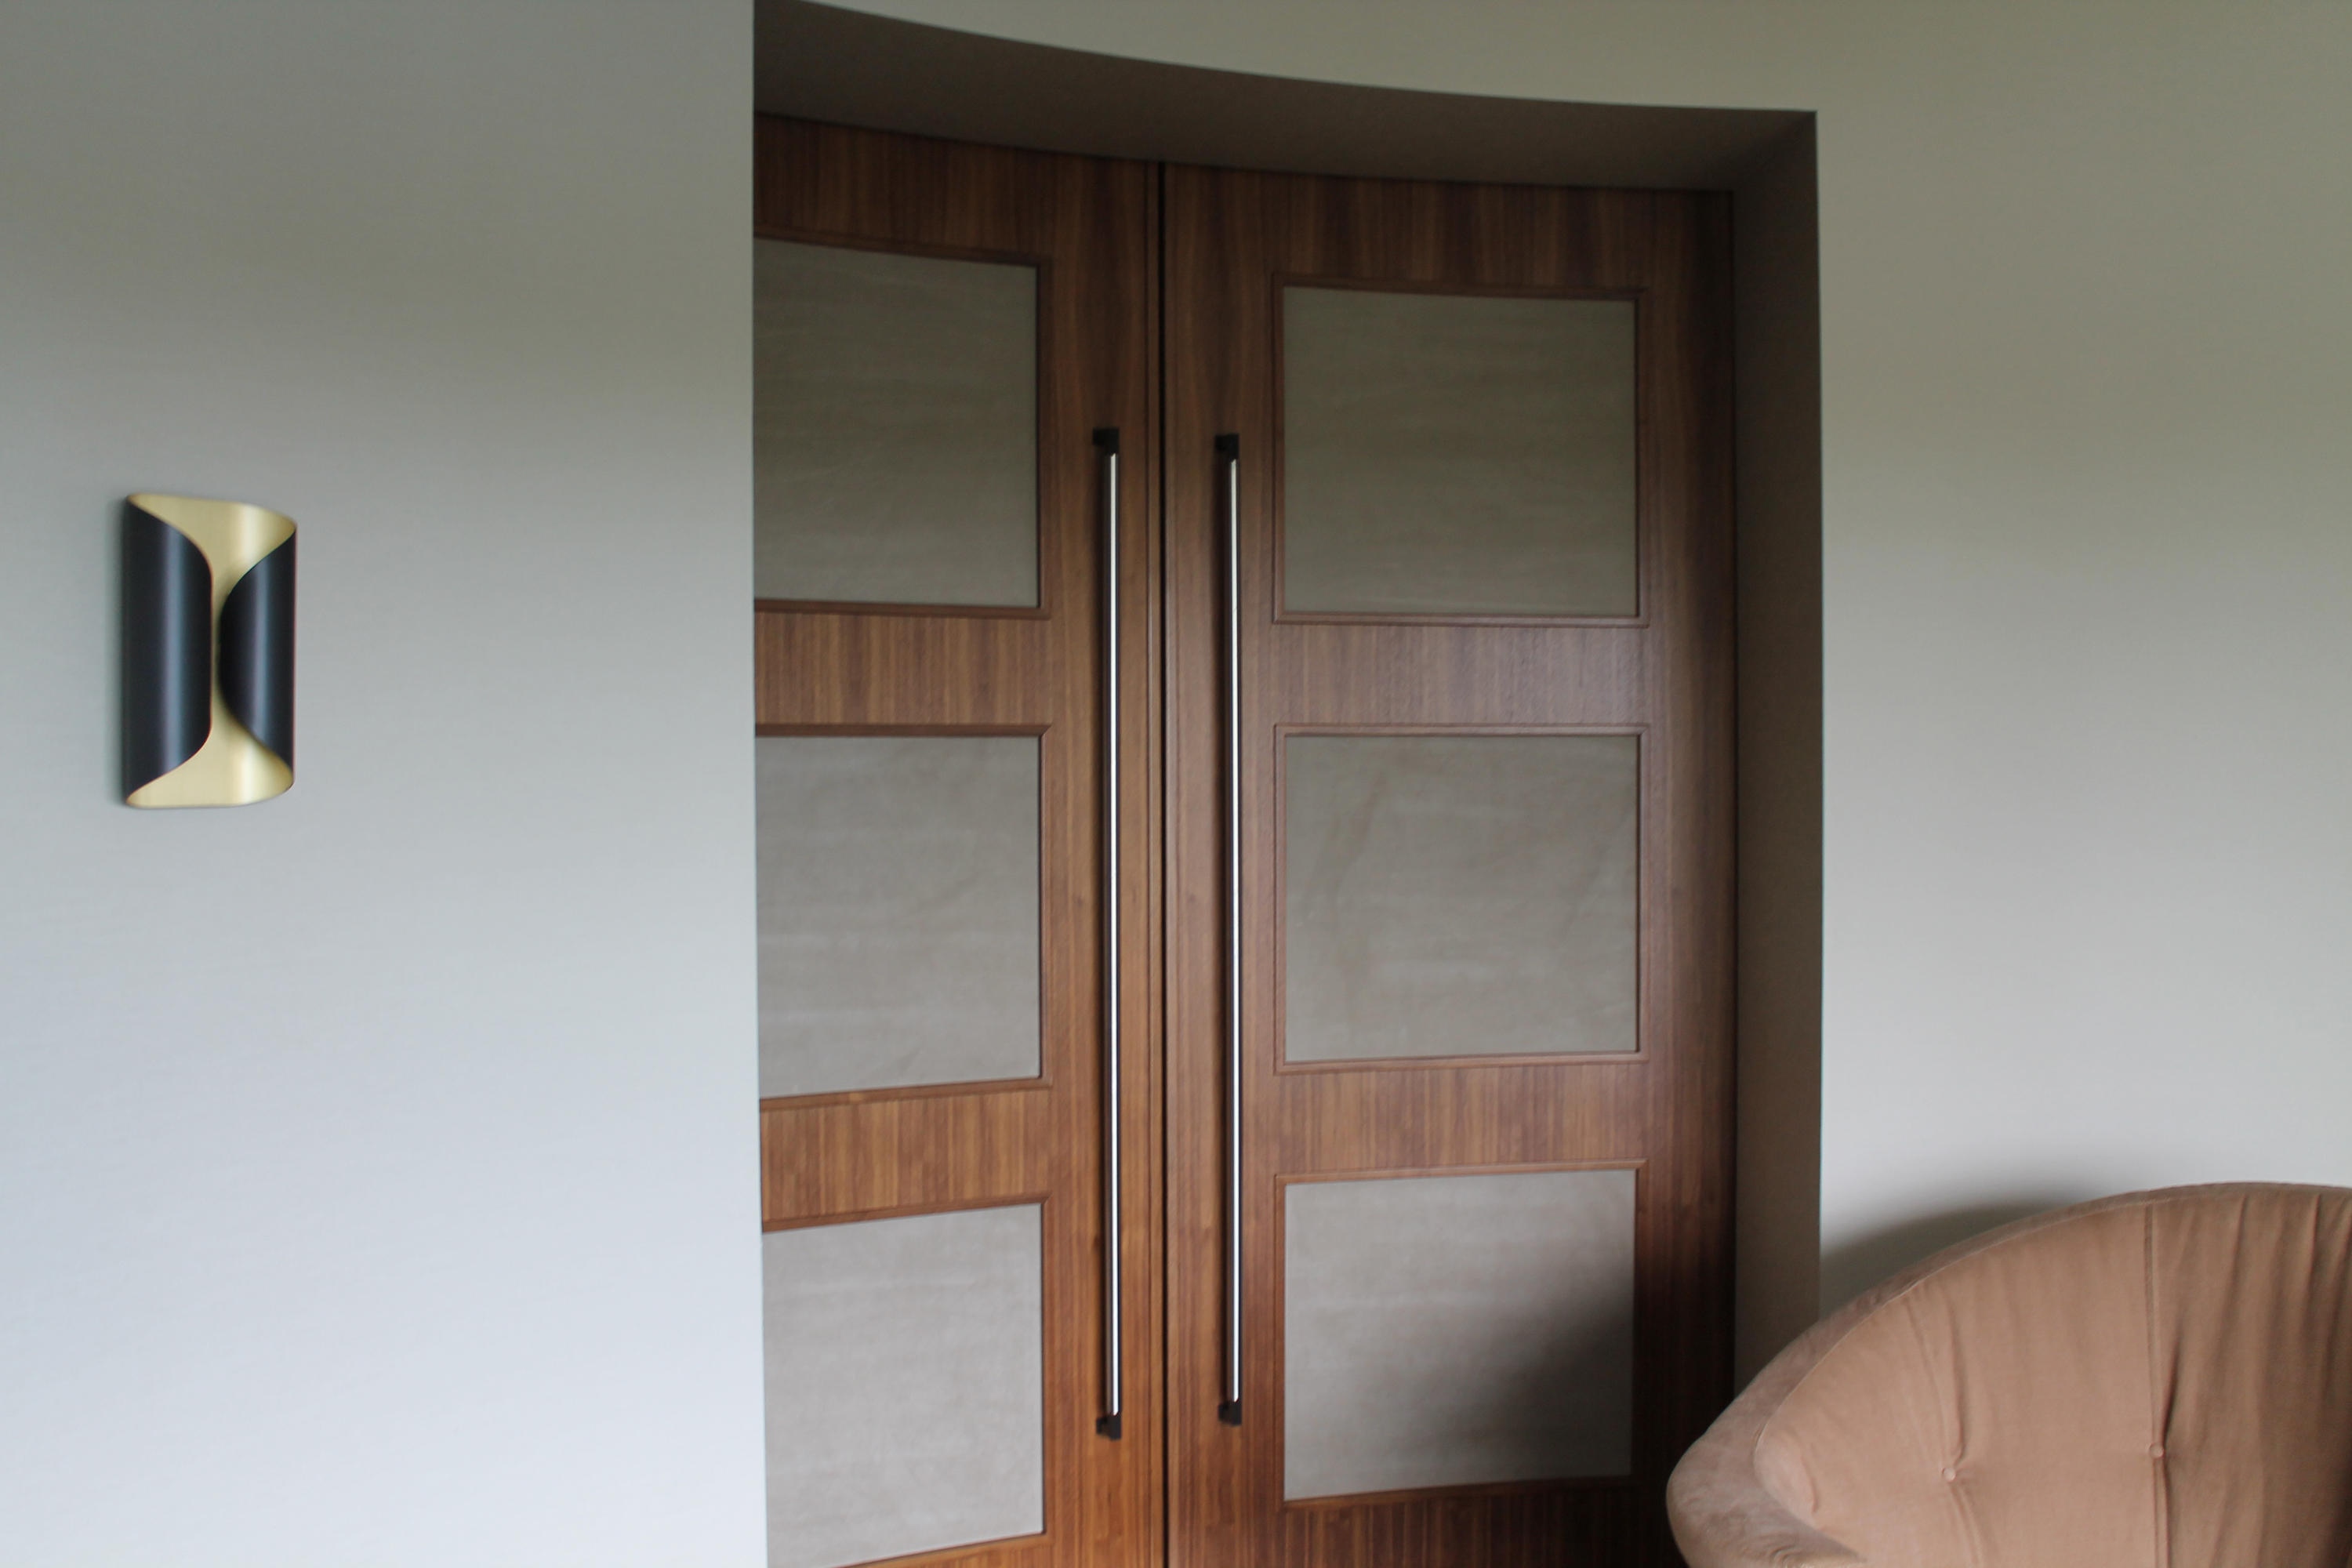 Specialty Doors - Curved Wood Doors by Bartels Doors \u0026 Hardware | Internal doors : curved doors - Pezcame.Com